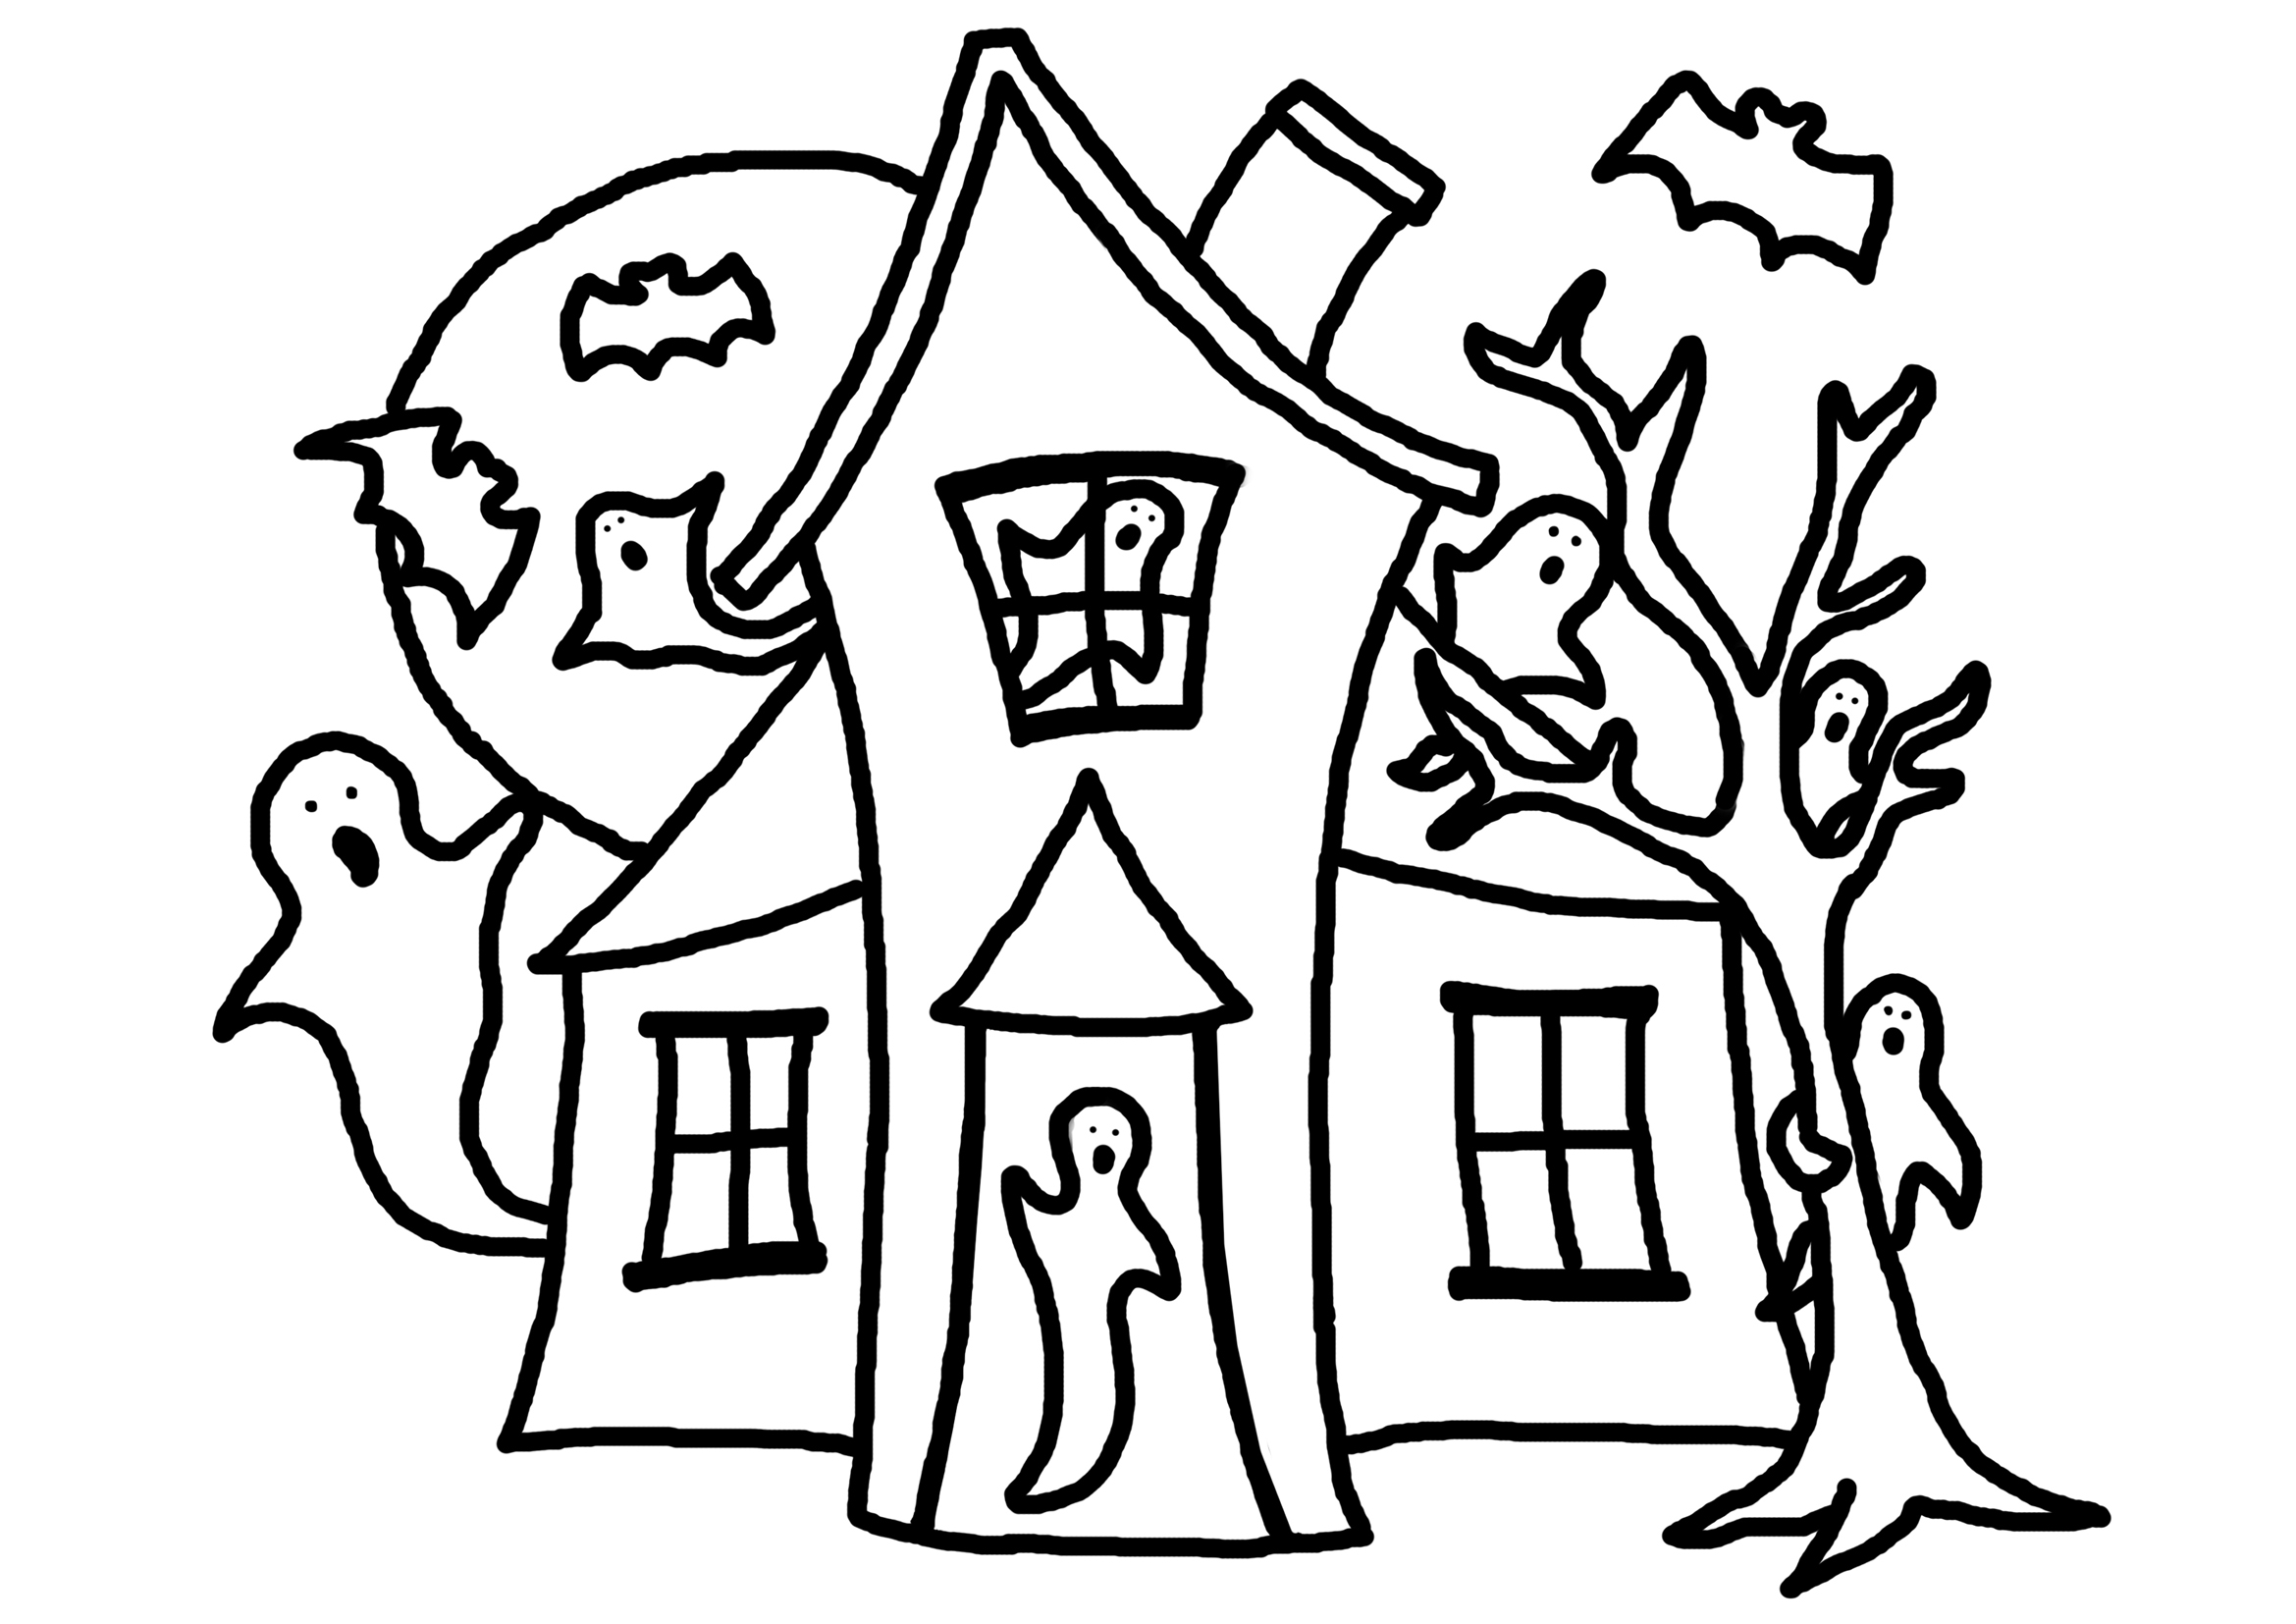 haunted house coloring pages for kids scary haunted house coloring pages download and print for free pages house kids haunted for coloring